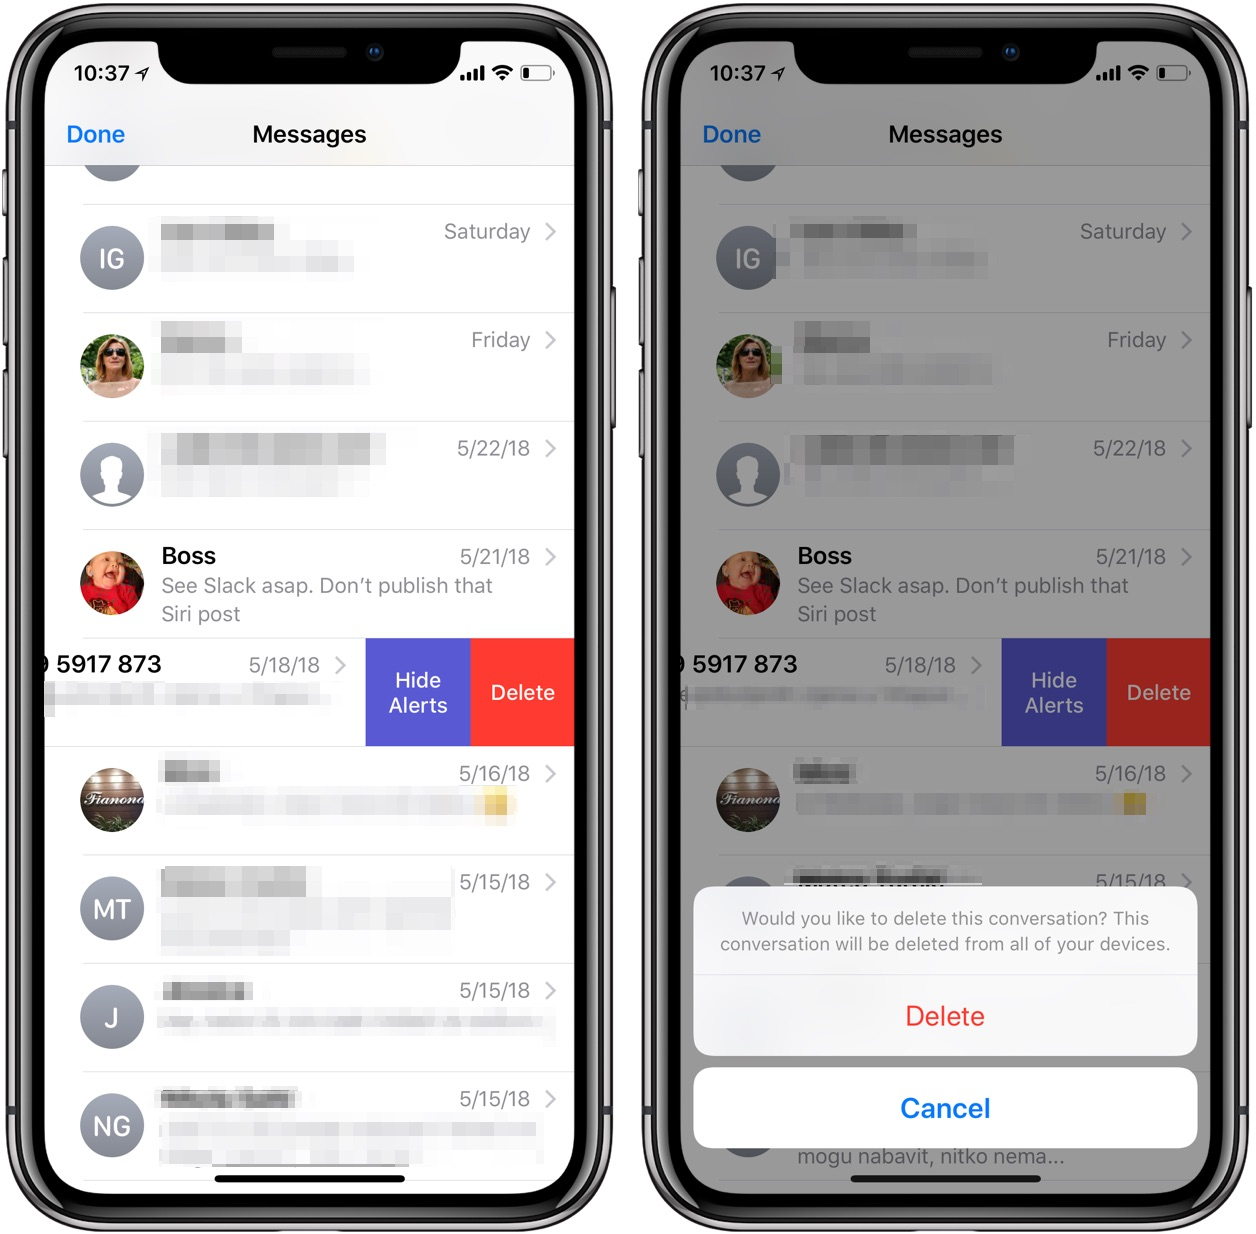 Apple Messages iCloud sync delete conversation thread prompt